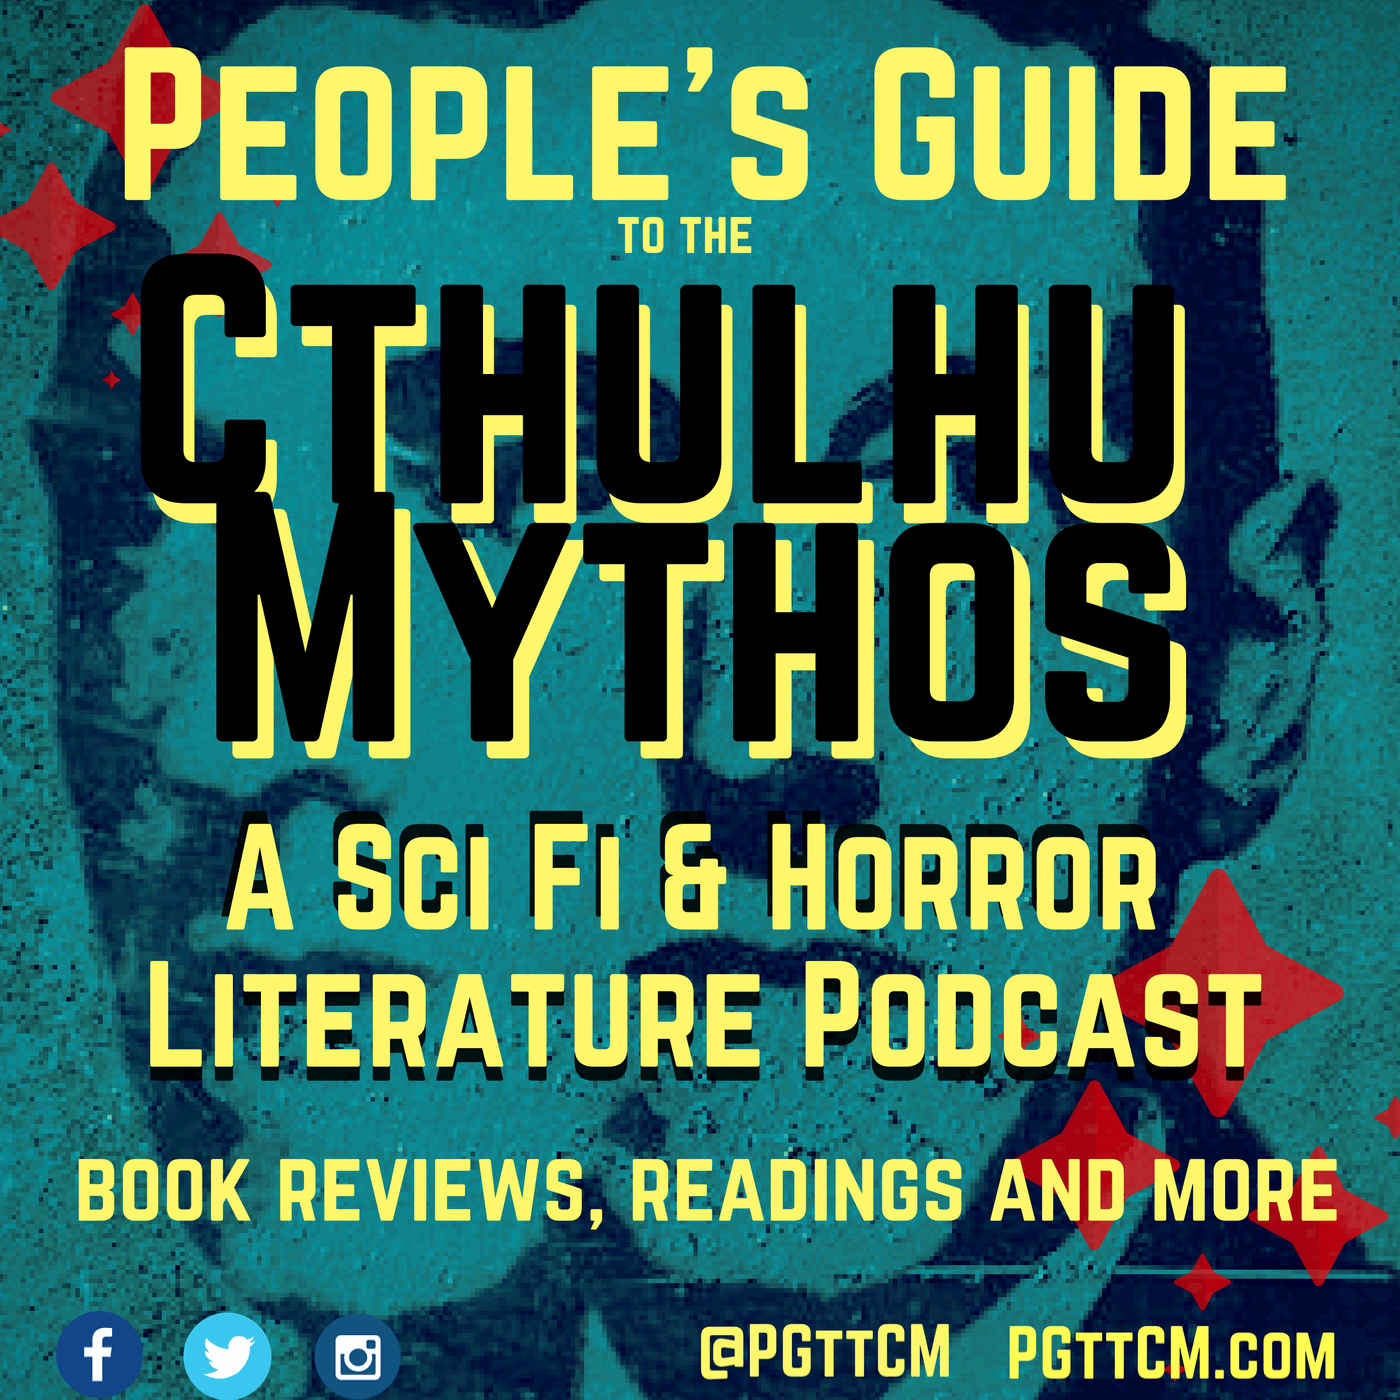 People's Guide to the Cthulhu Mythos: a horror and scifi literature podcast about Weird fiction, fantasy & cosmic horror, cult film & comic books